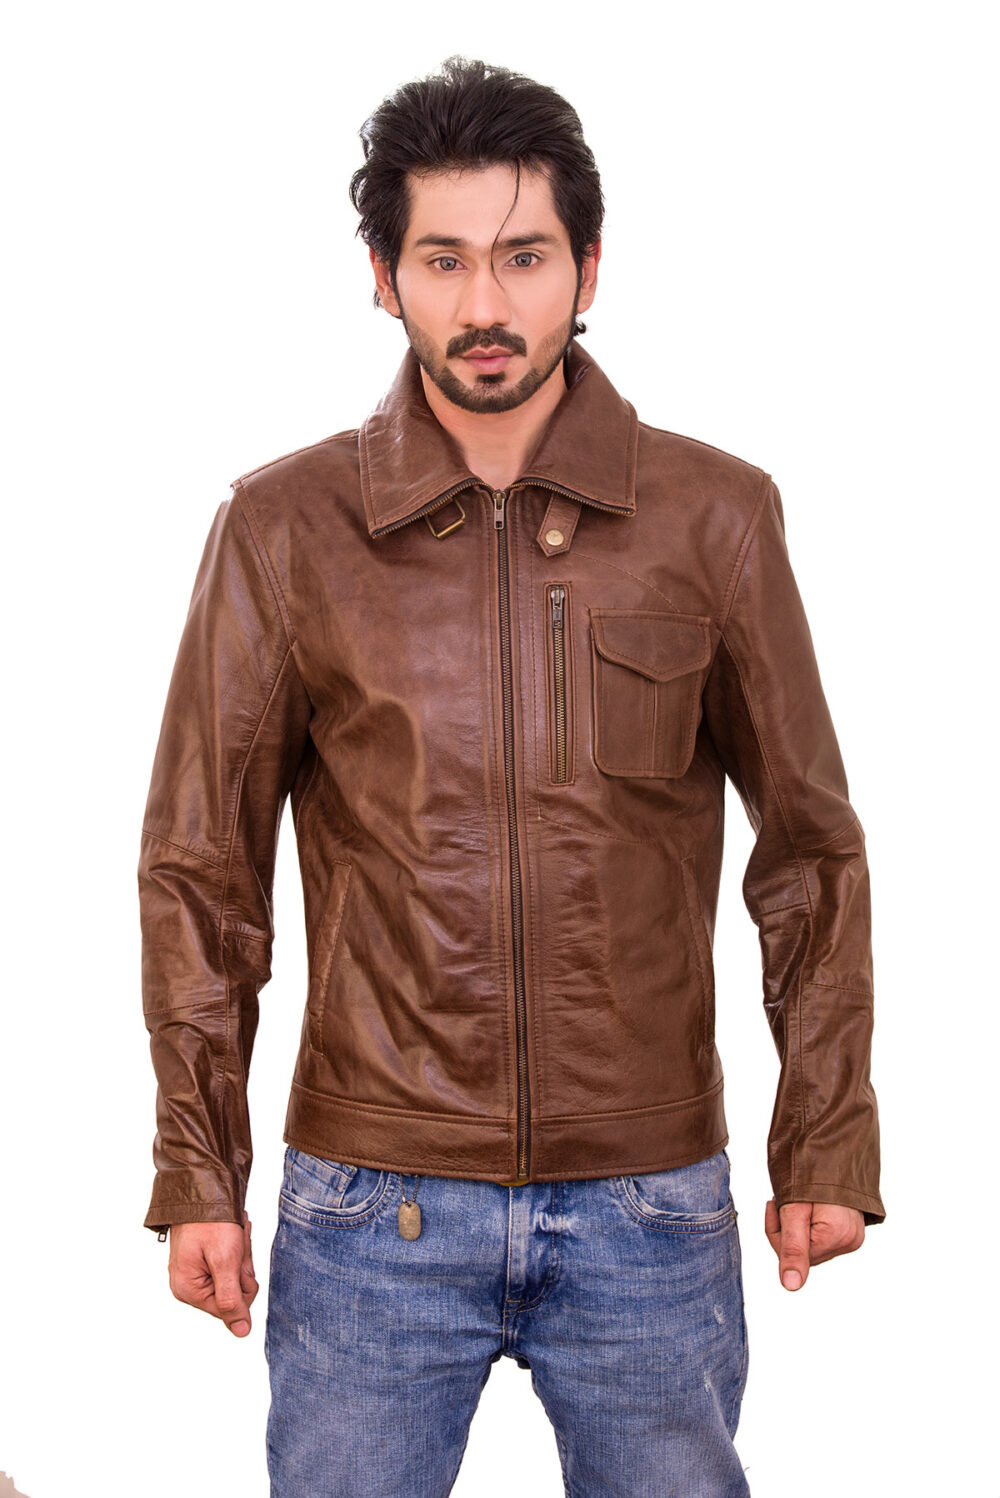 Mirage Antique Brown Classic Leather Jacket